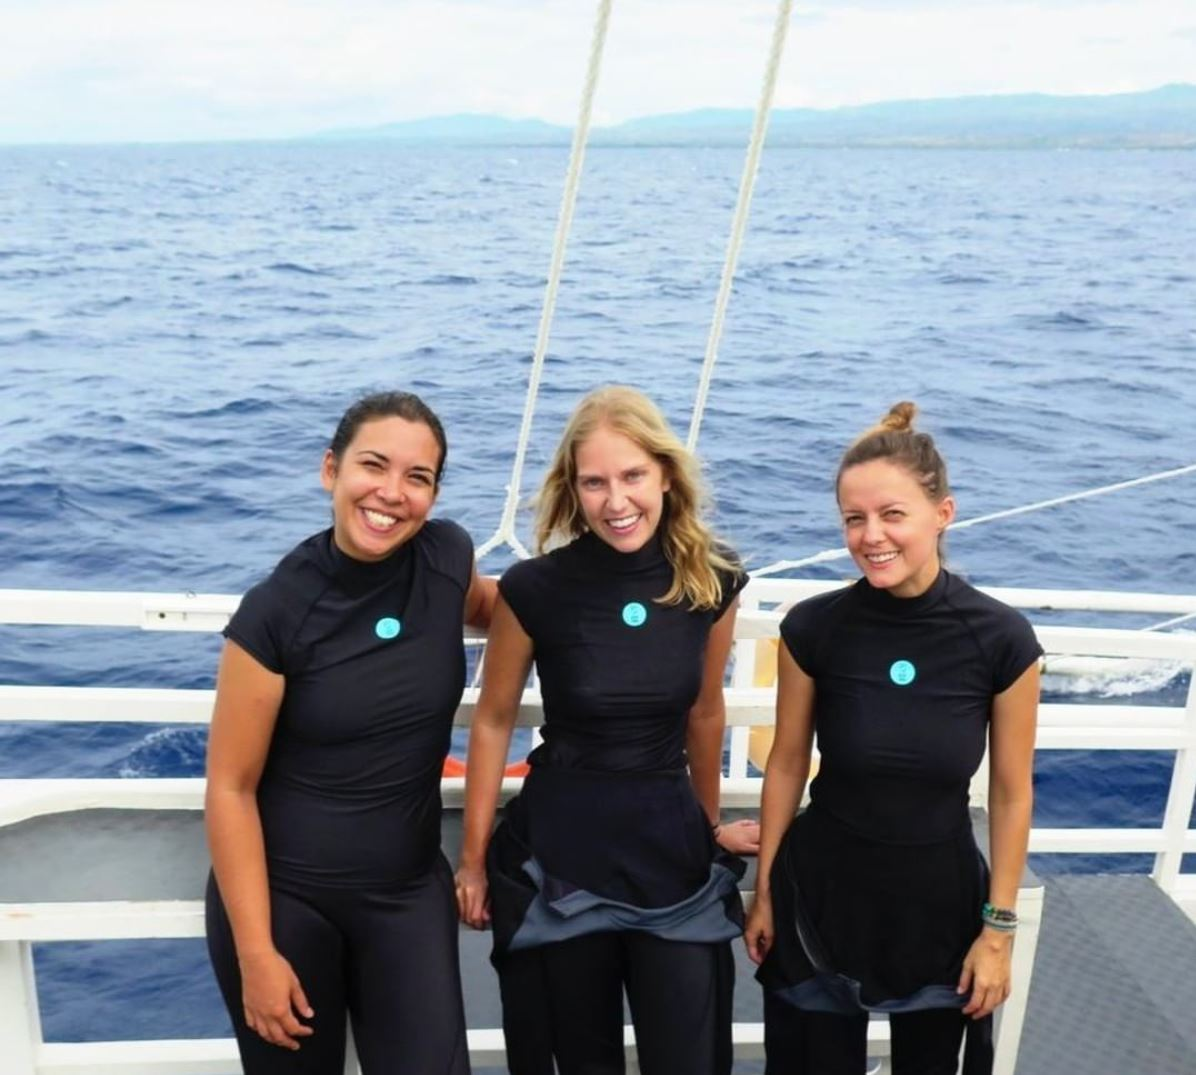 Sam, Mel and Jula from the Reef-World team